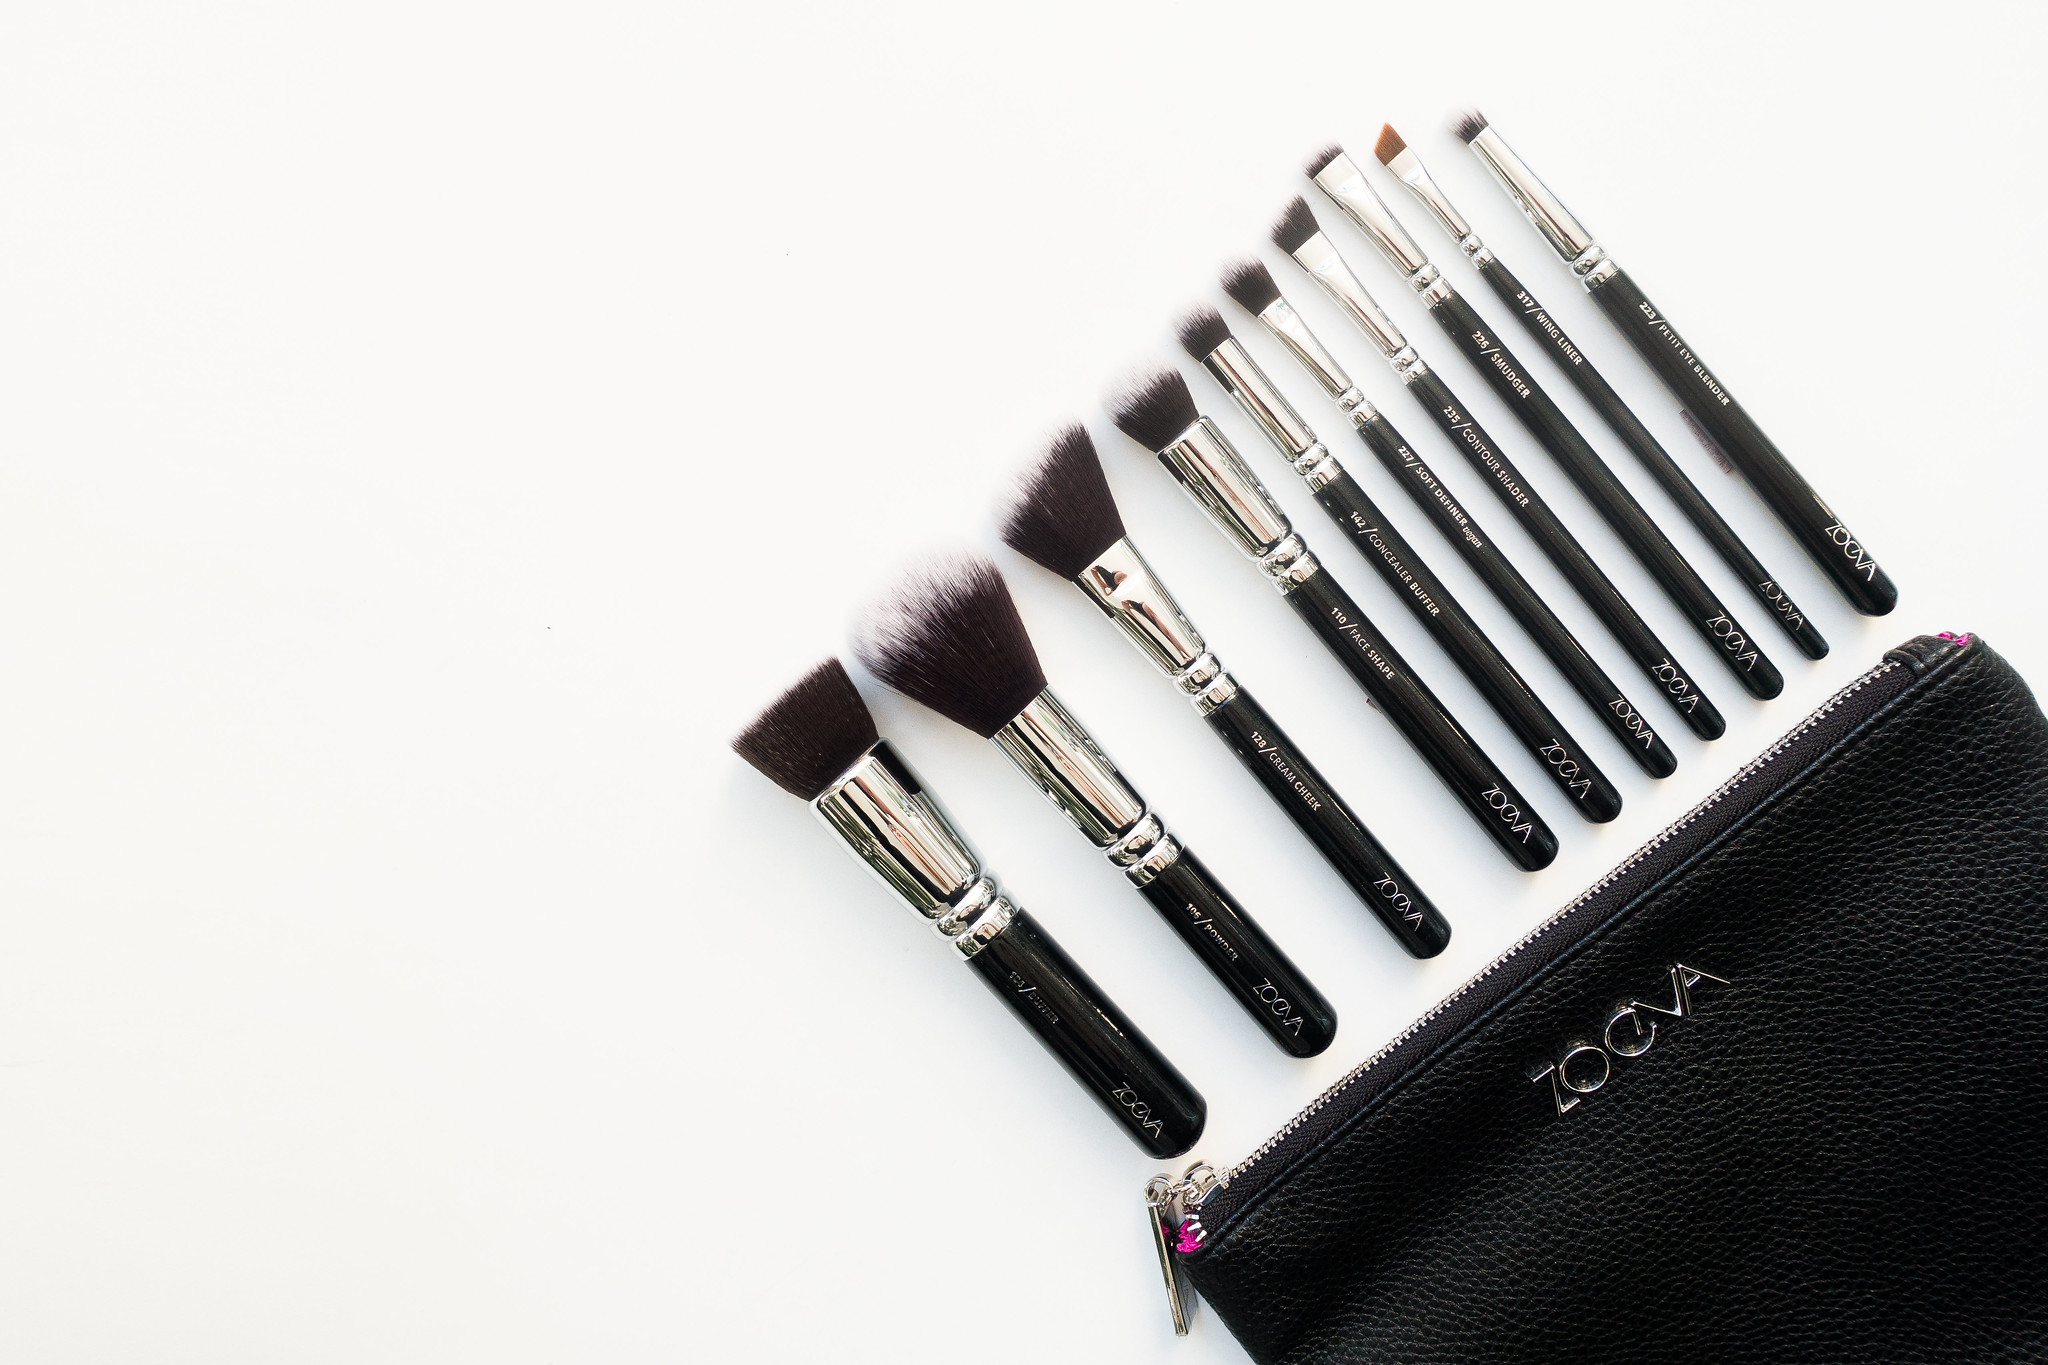 Cruelty-Free Brushes With Zoeva